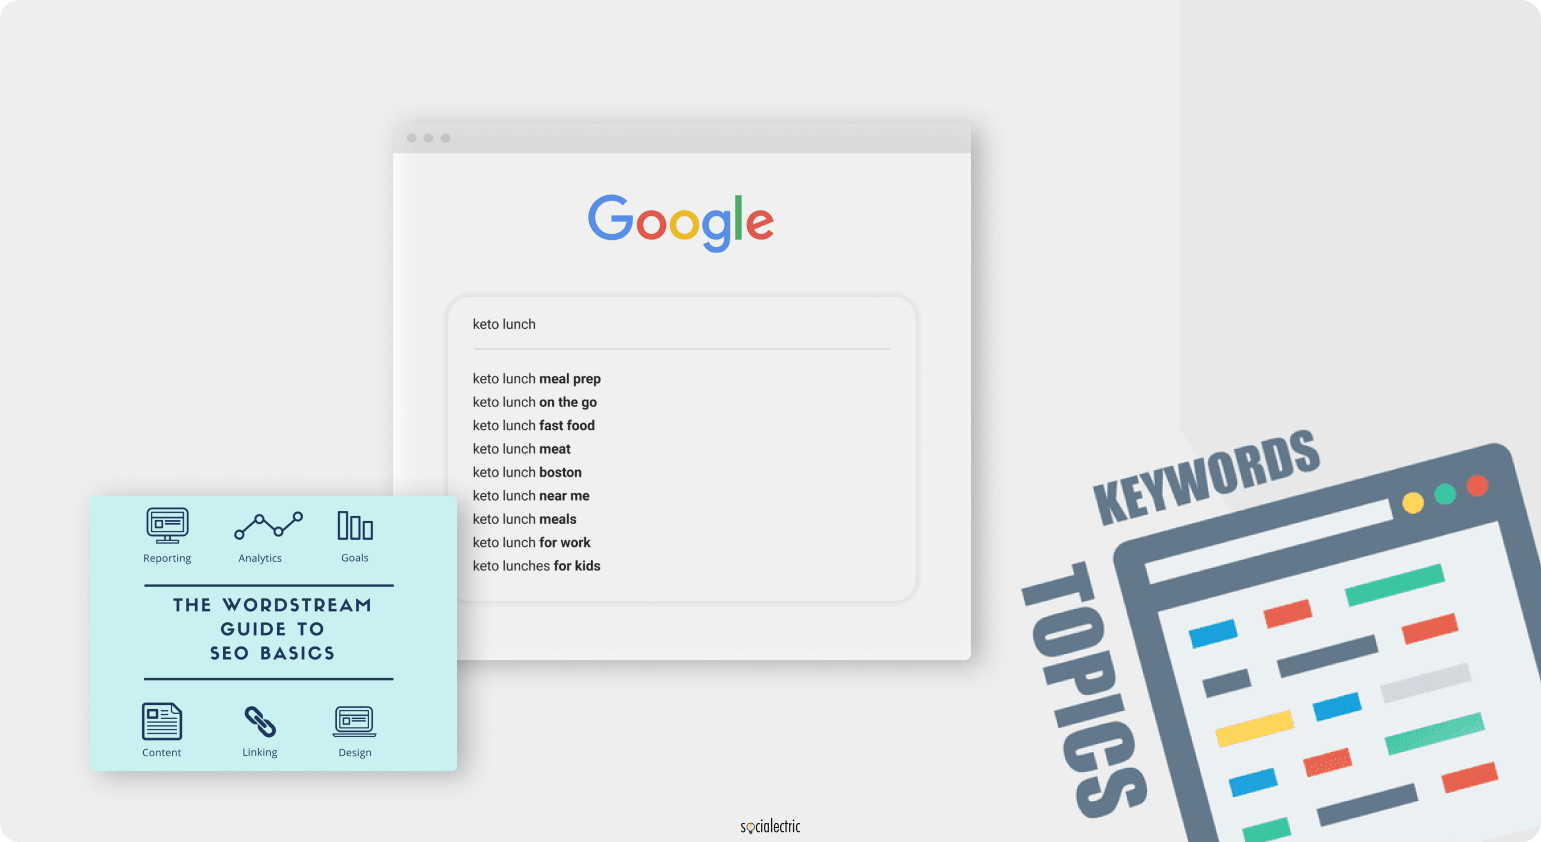 Some-skill-and-tips-for-website-user-to-use-and-easy-to-find-the-right-keyword